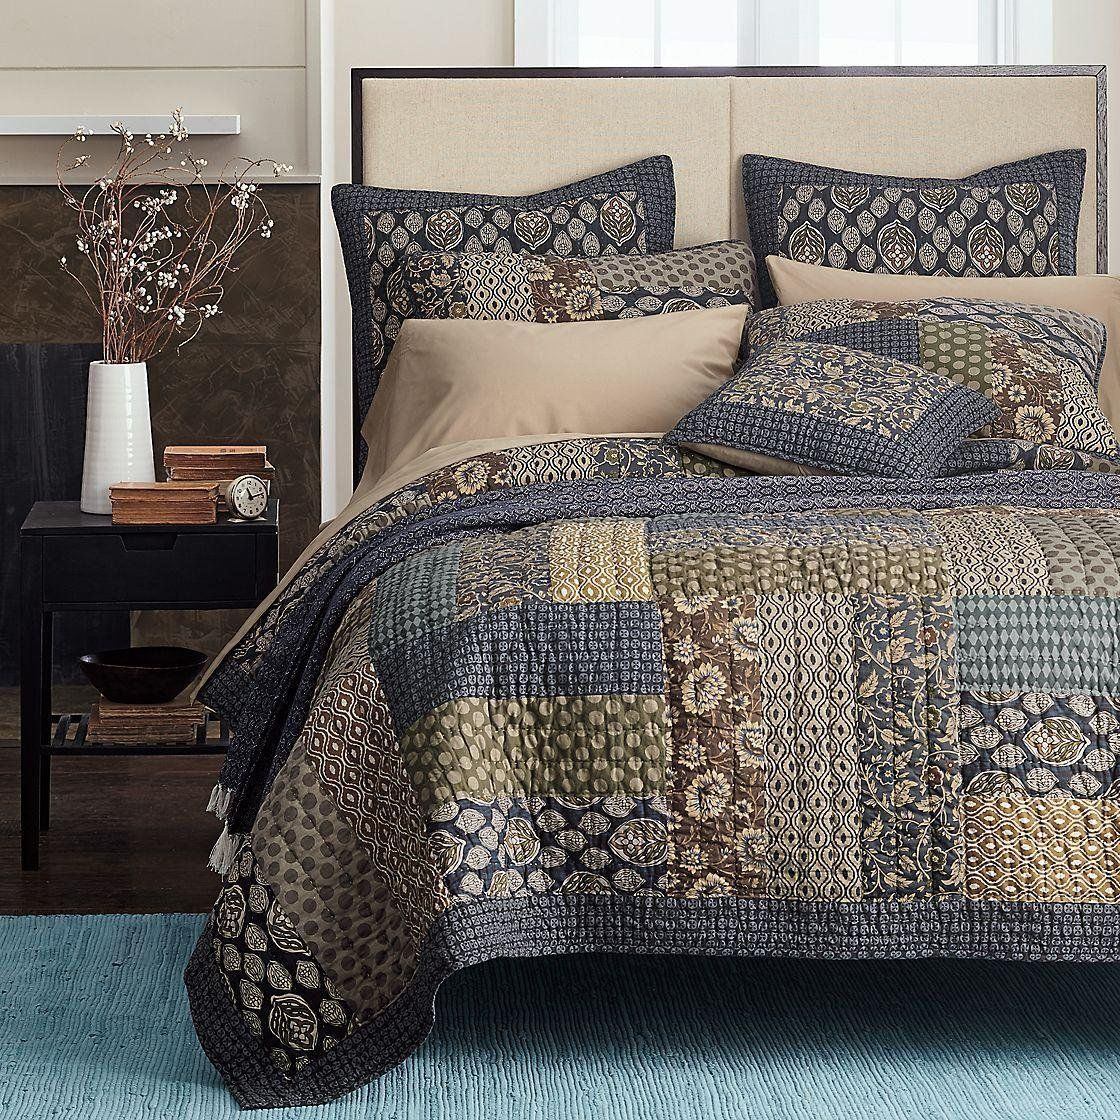 $155 amazonsmile: newrara boho bedding collection bohemian real